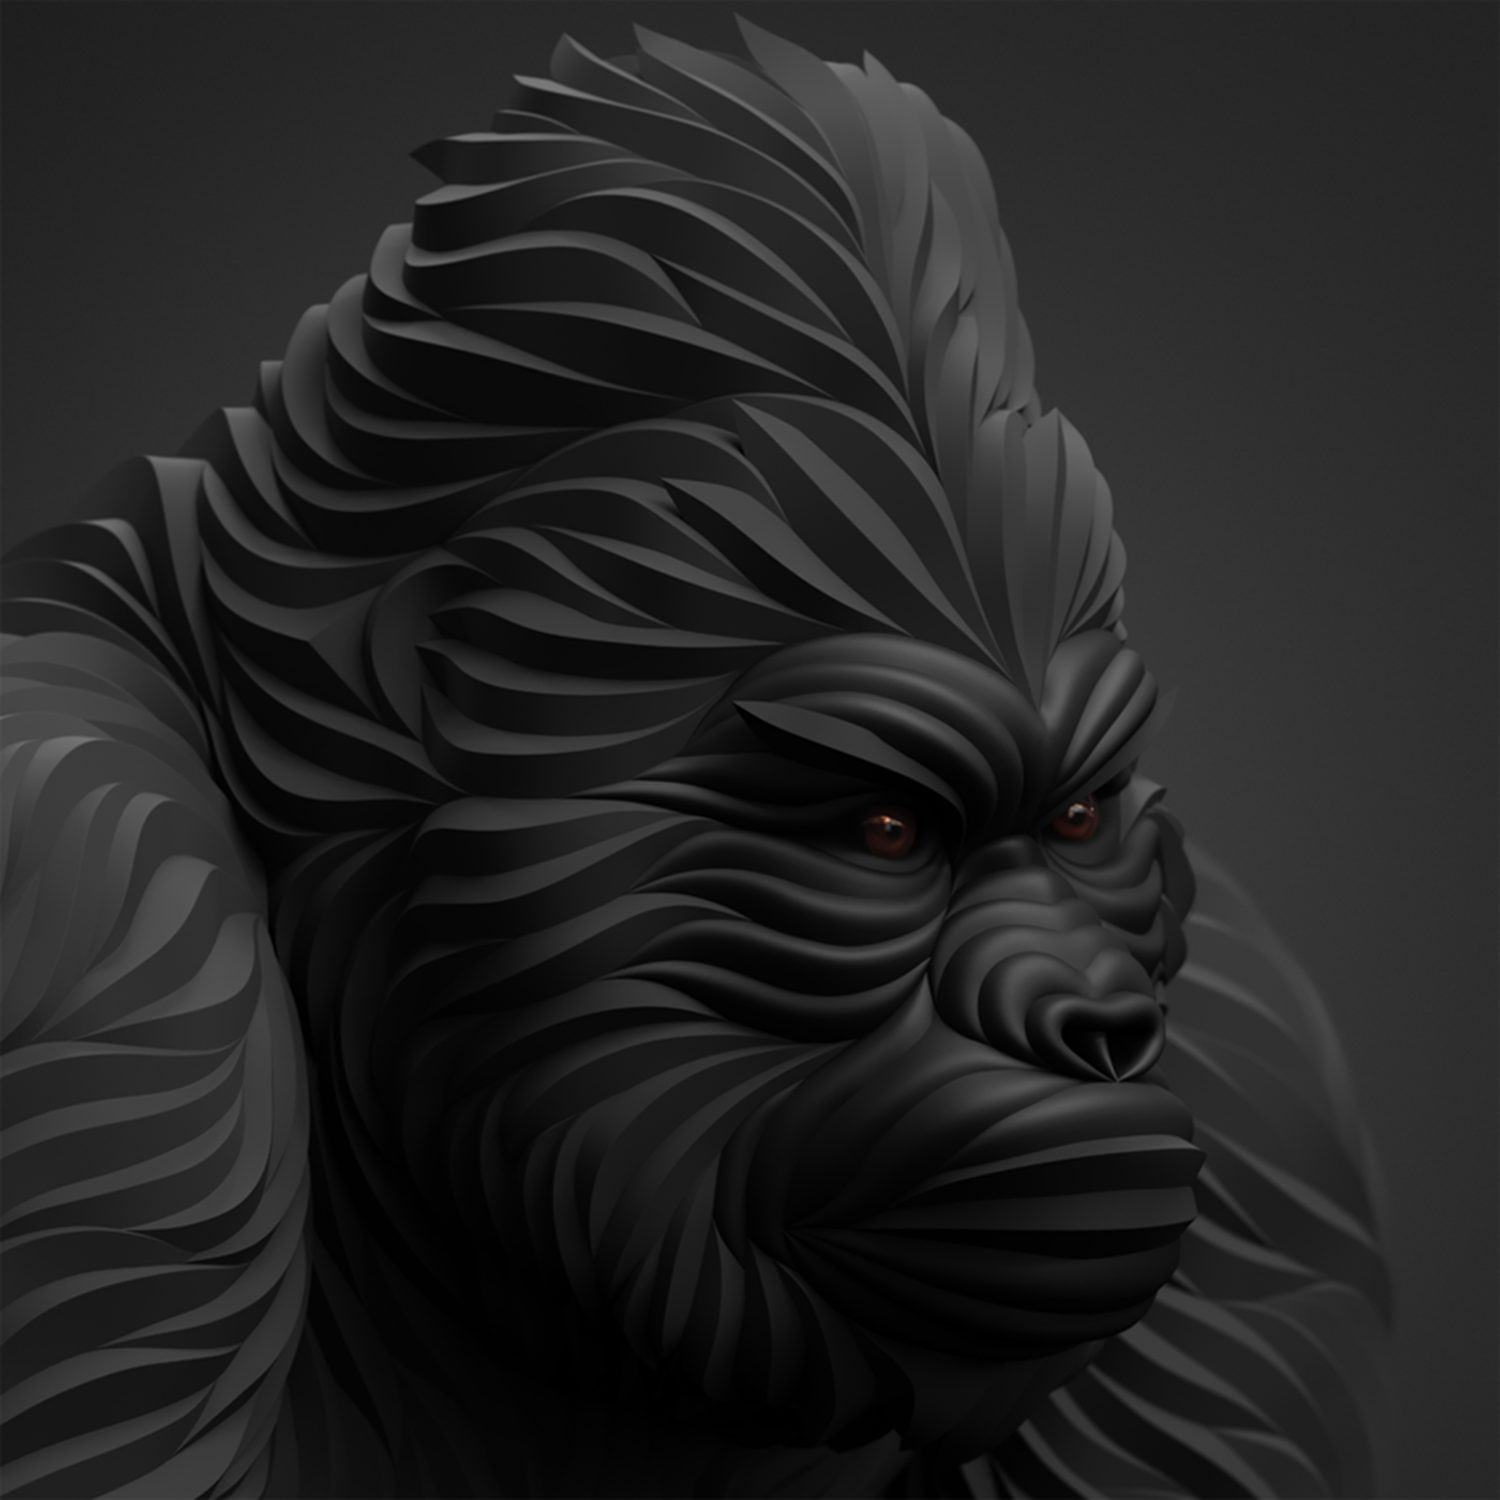 gorilla 3d art in black